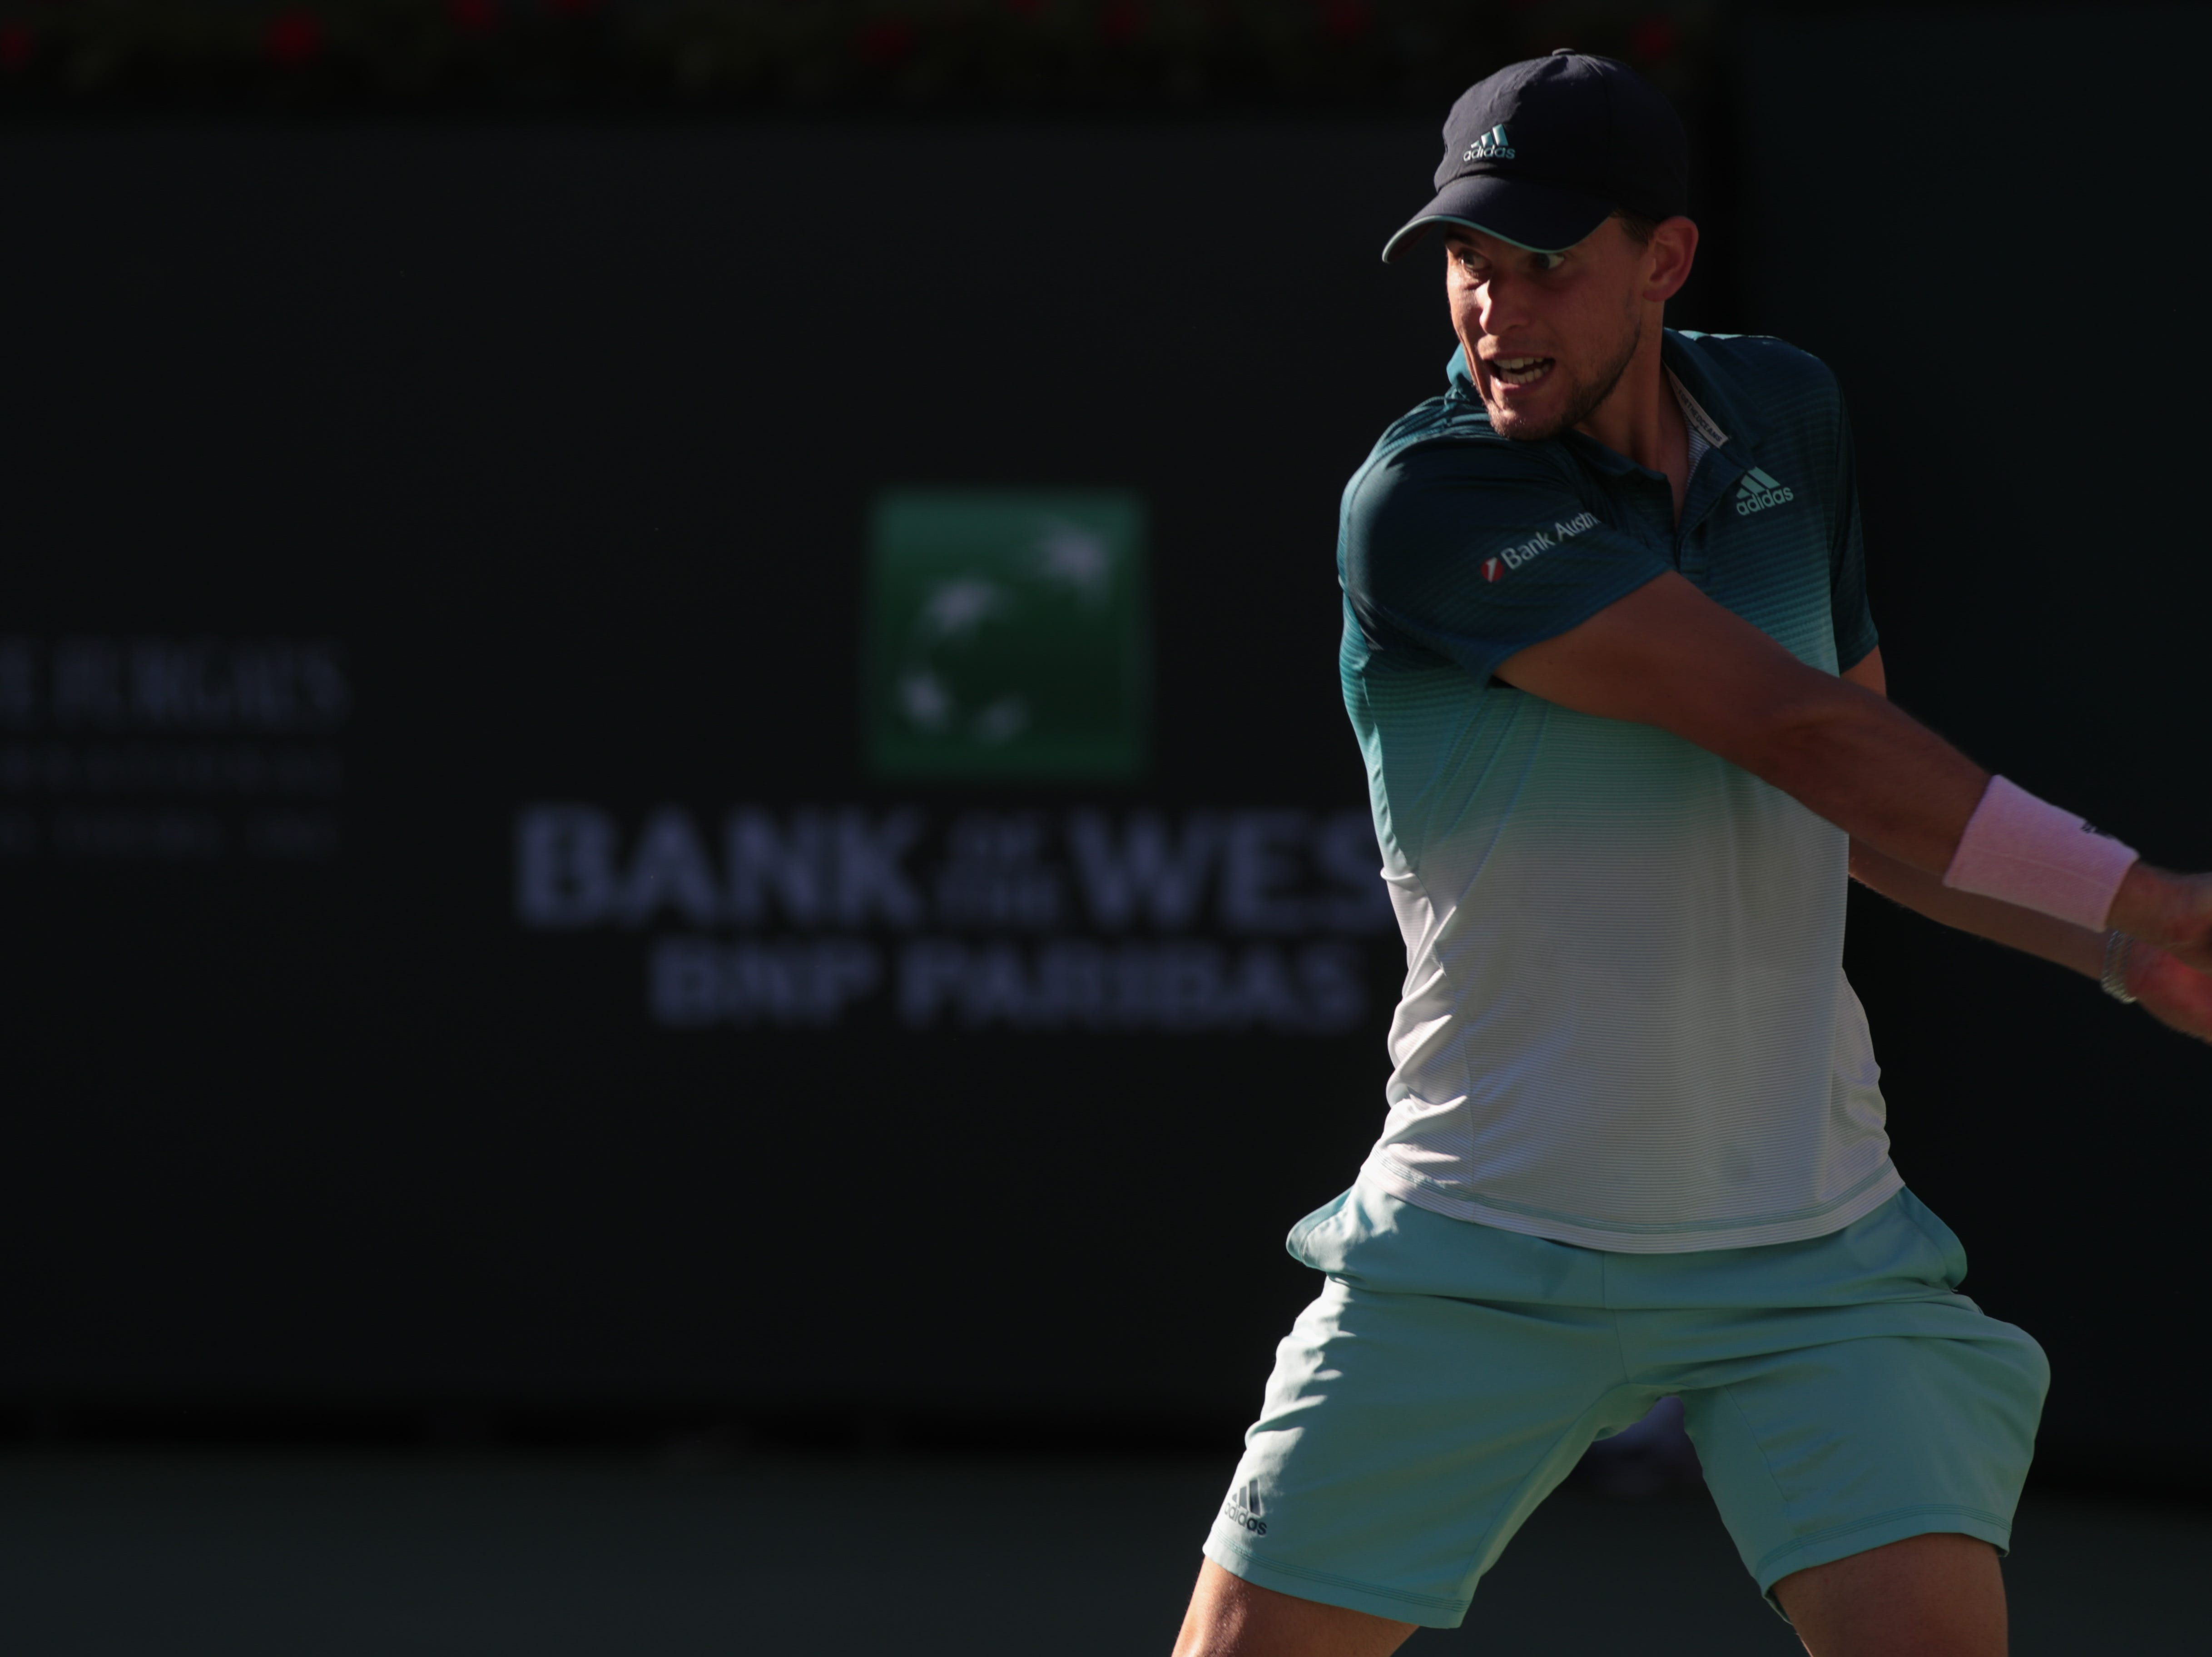 Dominic Thiem hits a backhand to Roger Federer in the finals of the BNP Paribas Open in Indian Wells, Calif., March 17, 2019.